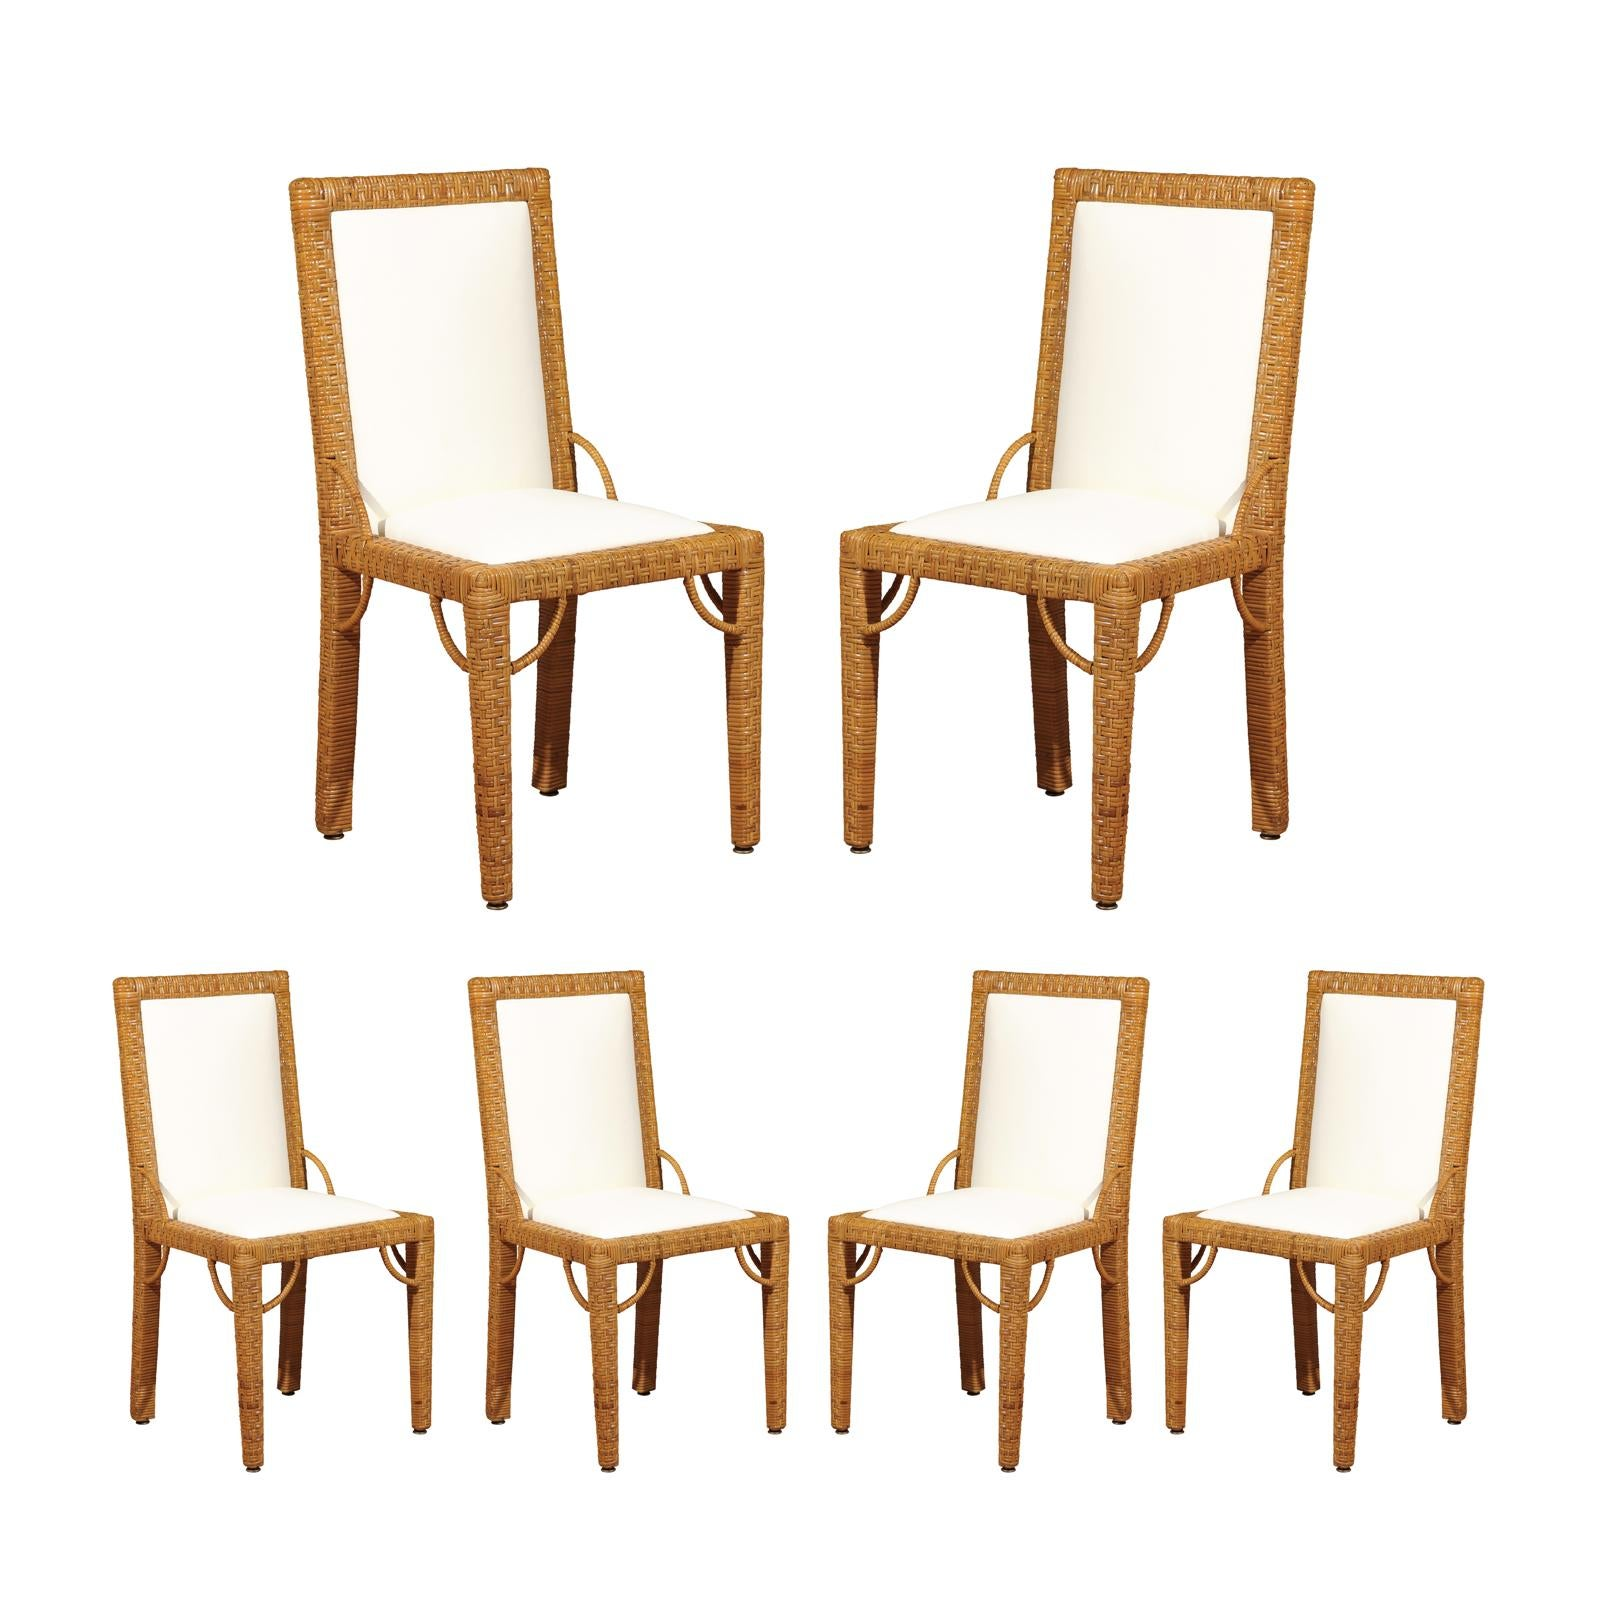 Stylish Set of 6 Restored Rattan Parsons Style Dining Chairs, circa 1975